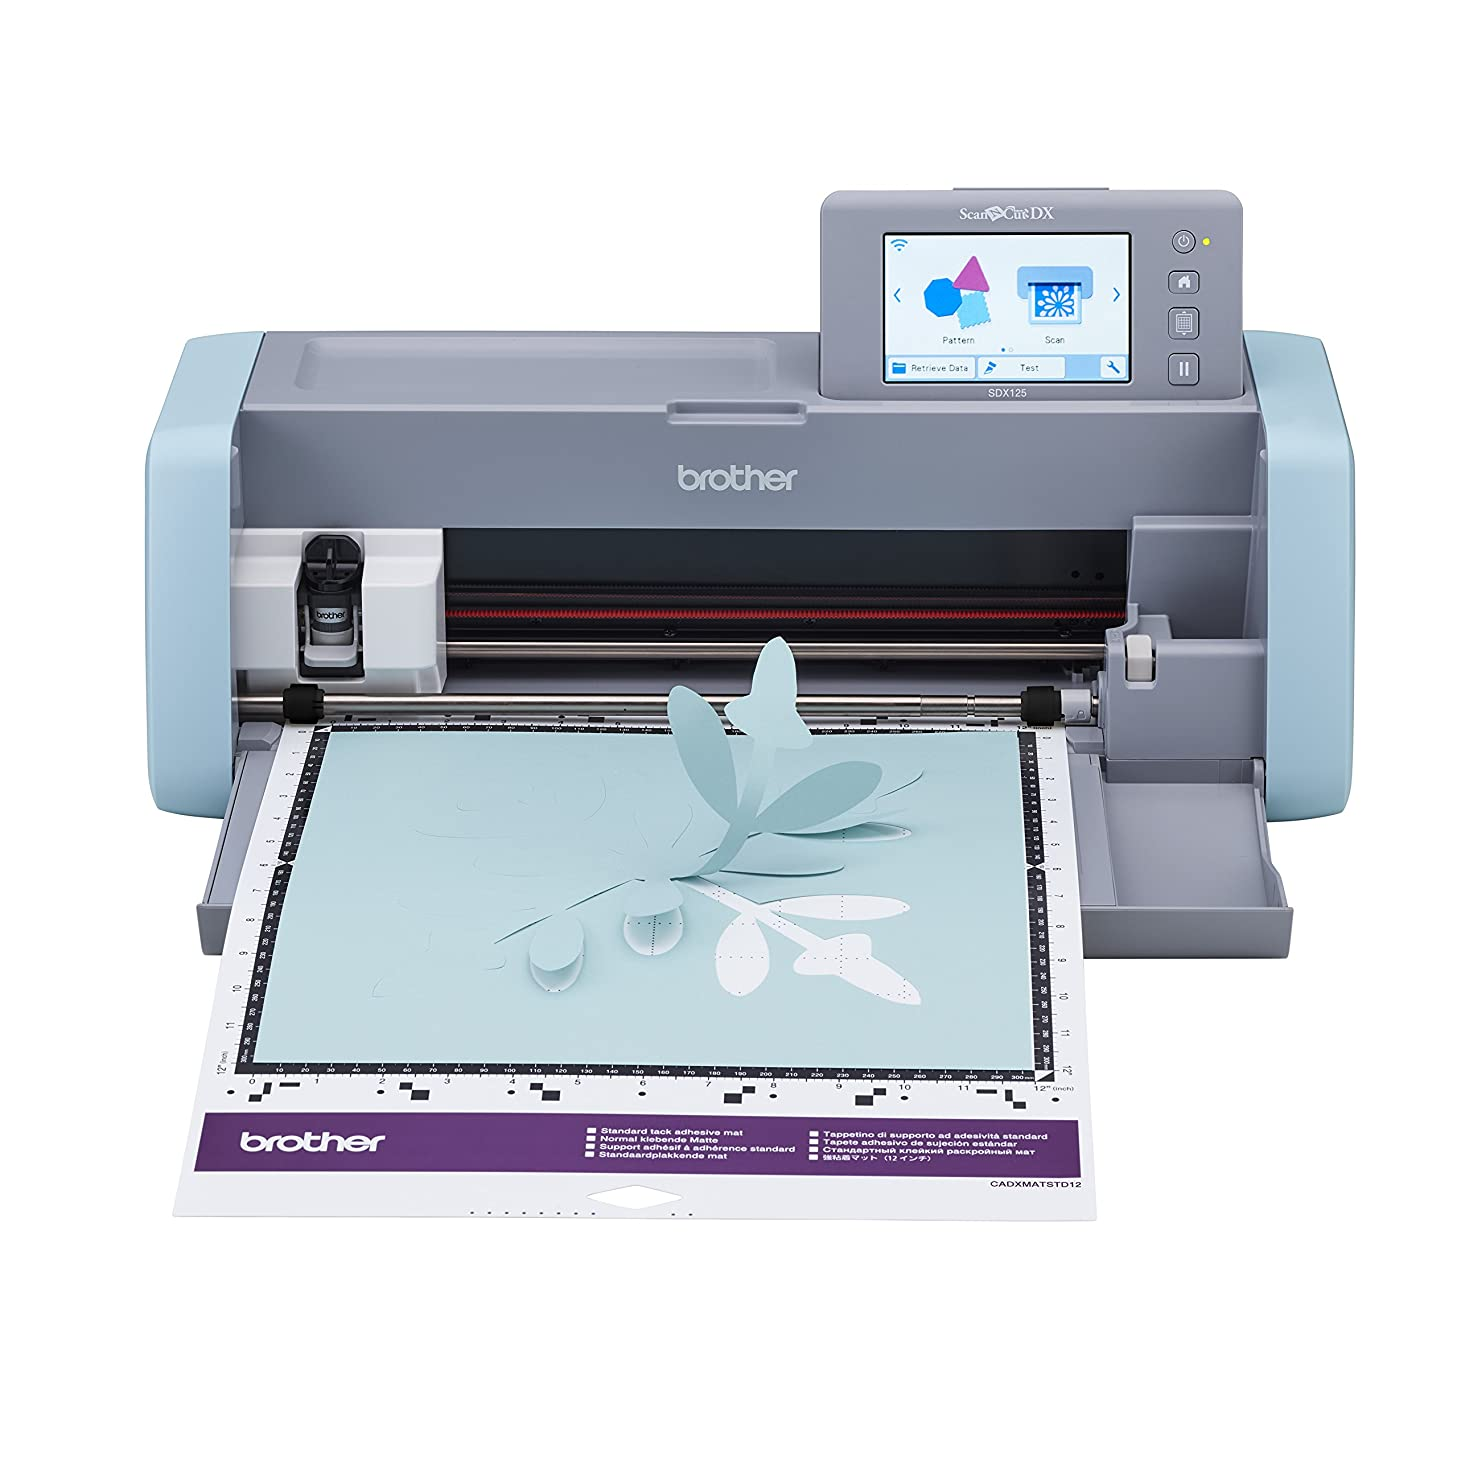 """Brother ScanNCut DX, SDX125, 5"""" LCD Touch Screen, Wireless Network Ready, 600 DPI Scanner, 682 Built-in Designs Home Electronic Cutting Machine, Grey/Aqua"""